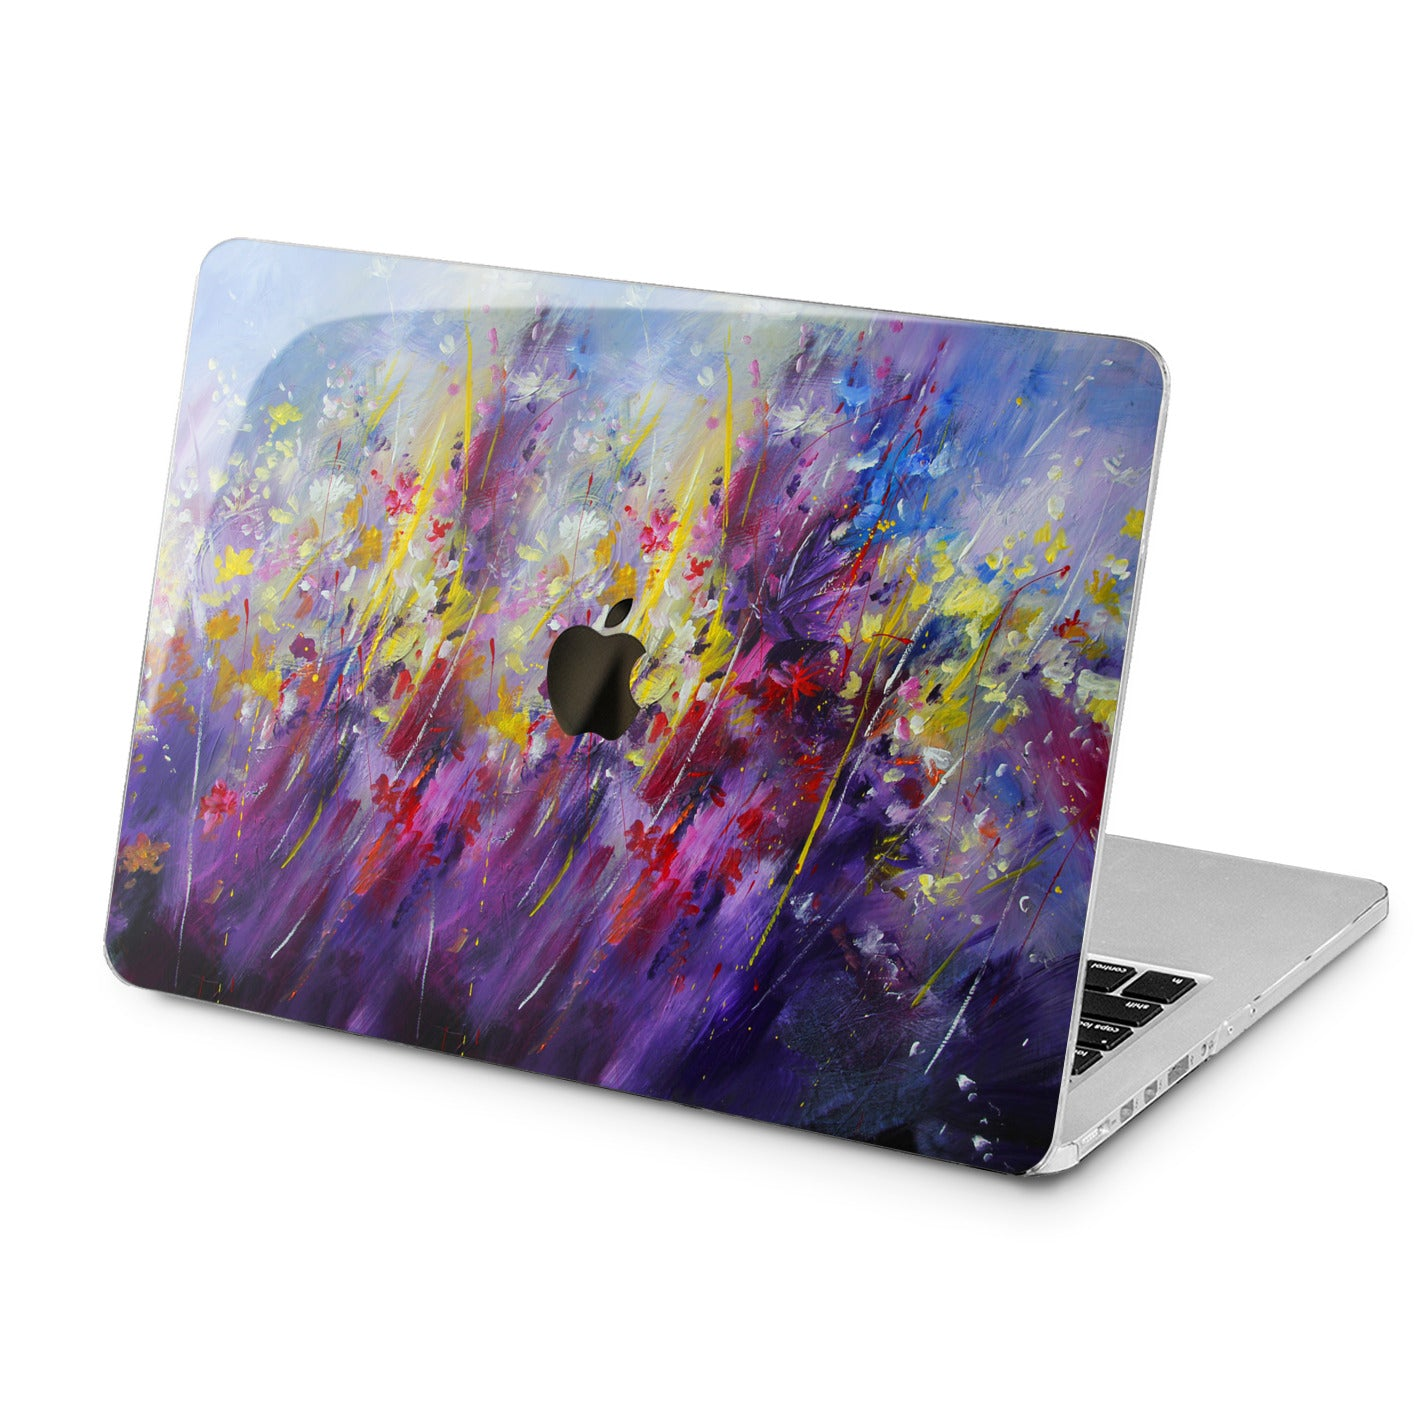 Lex Altern Lex Altern Painted Wildflowers Case for your Laptop Apple Macbook.